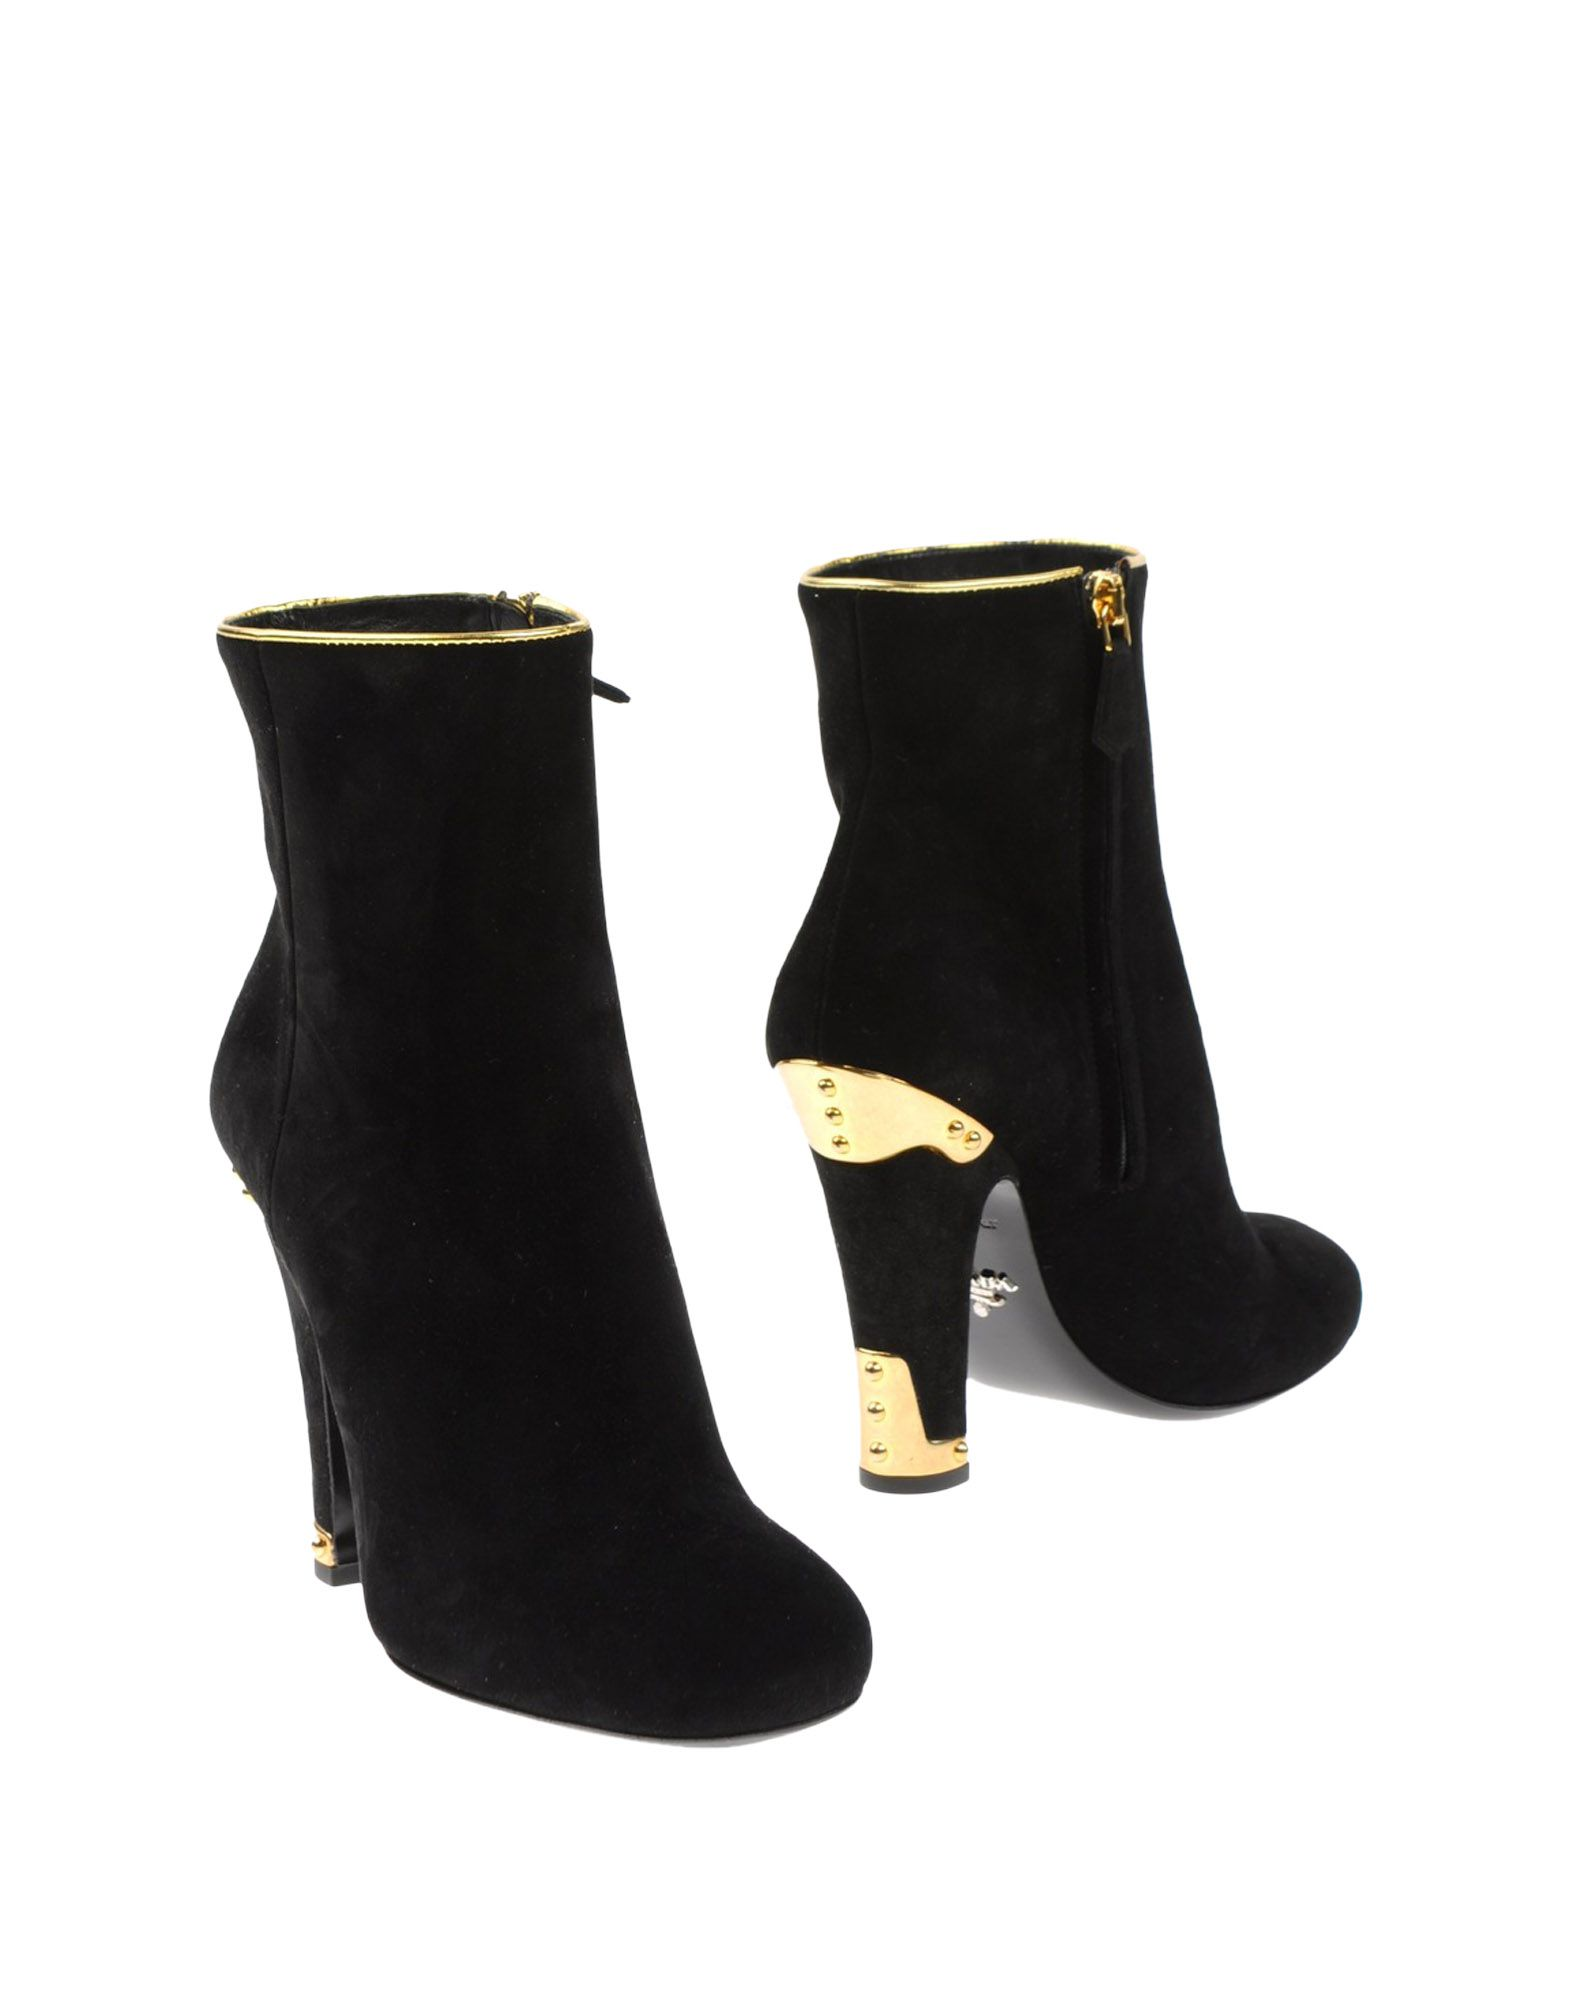 Prada Ankle Boot - Women Prada Ankle United Boots online on  United Ankle Kingdom - 11233061SD f9e555